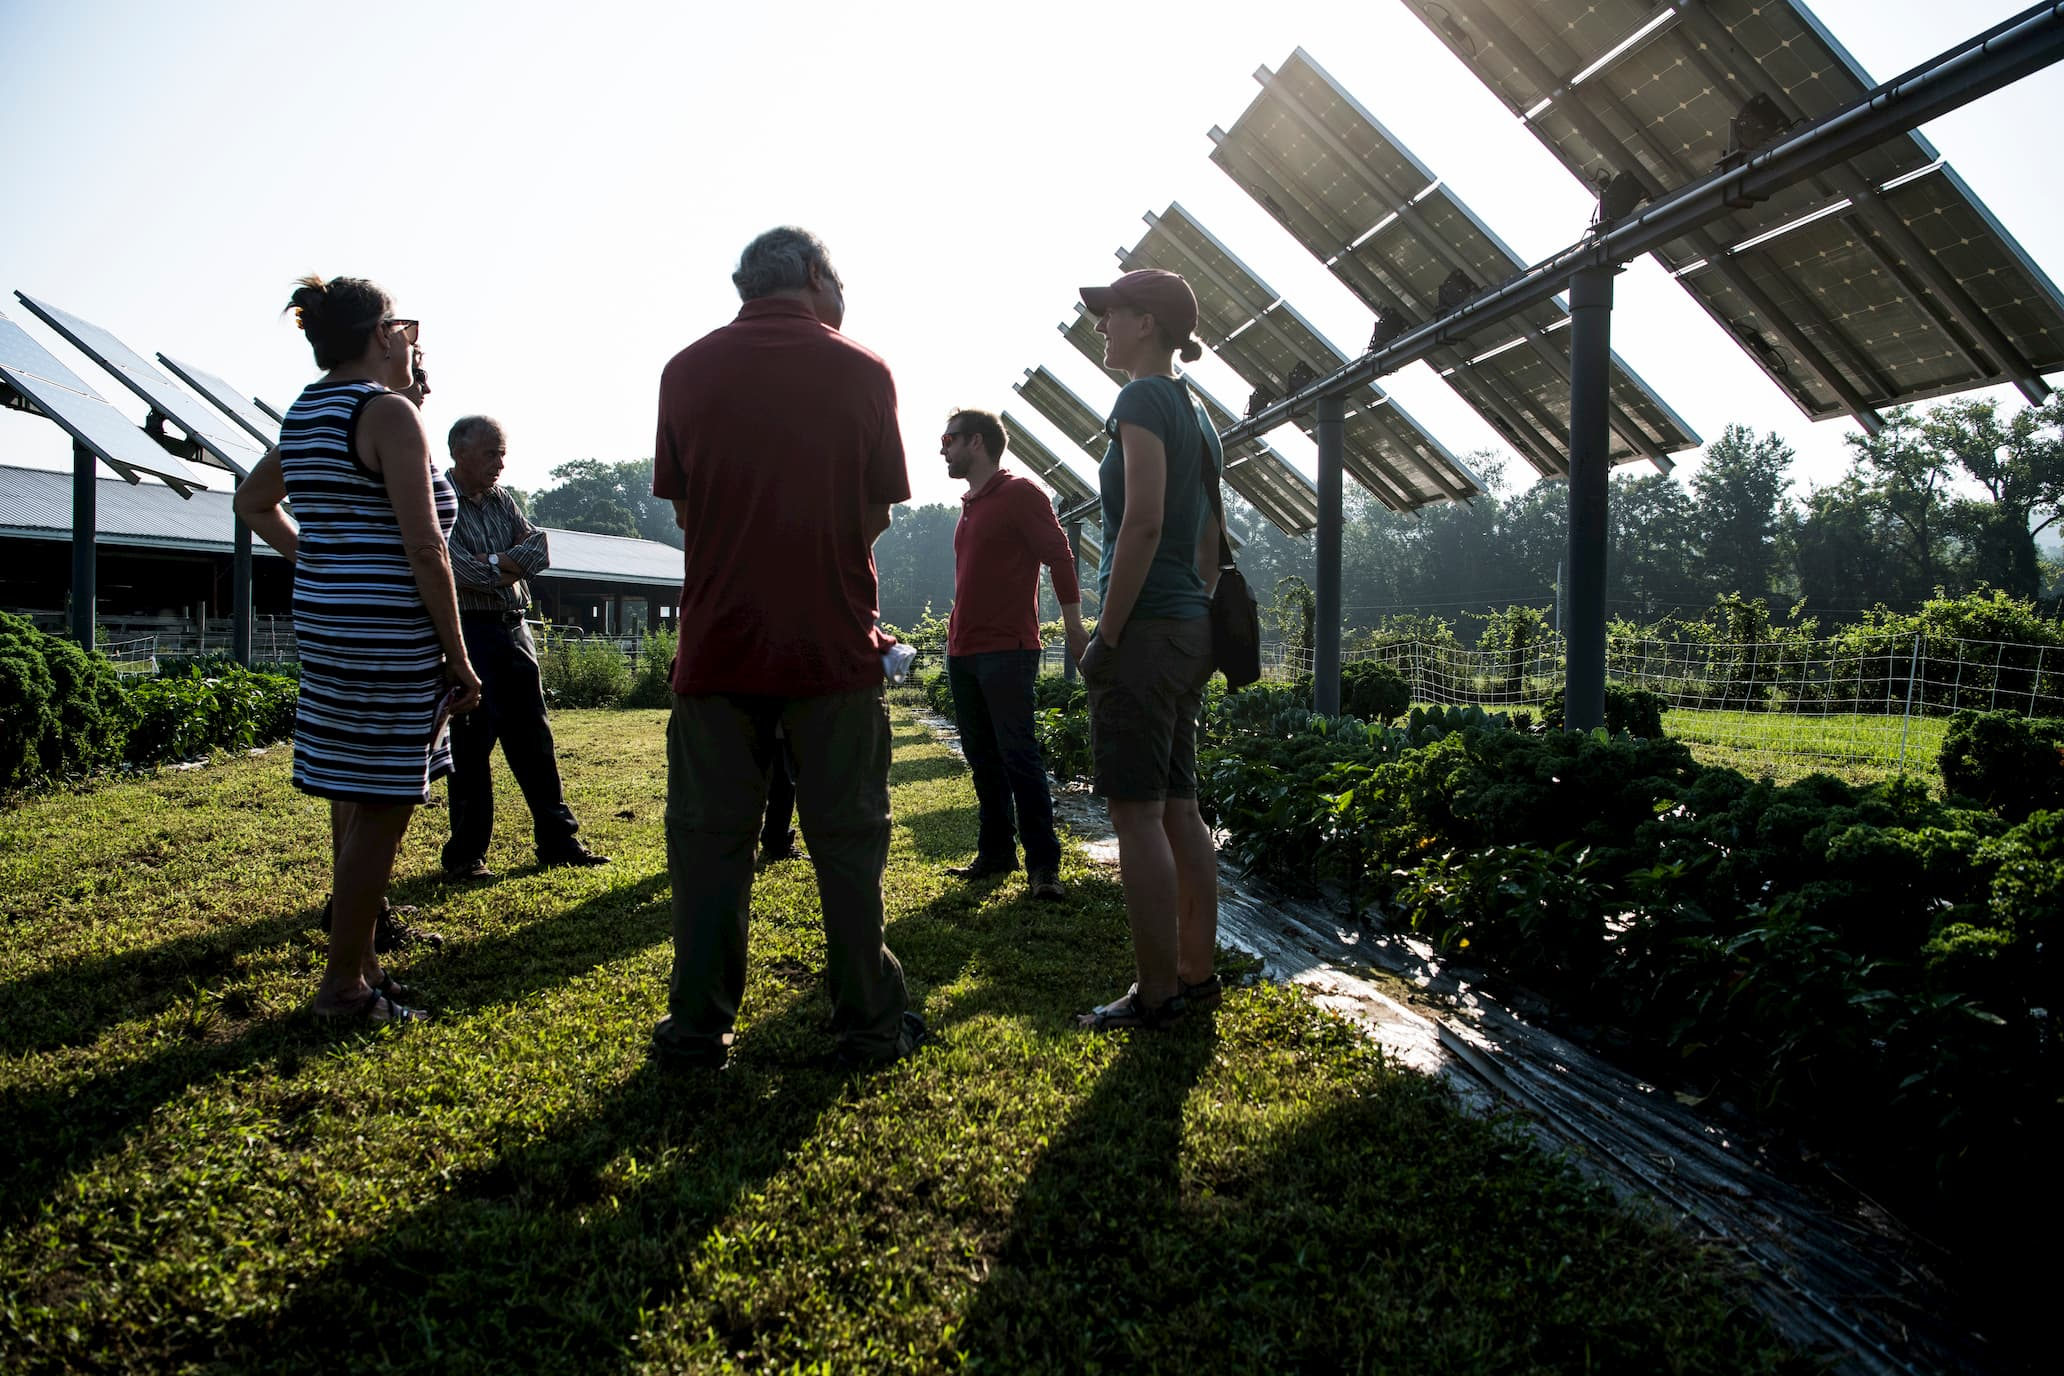 A photo of a group of people standing in a field with solar panels.